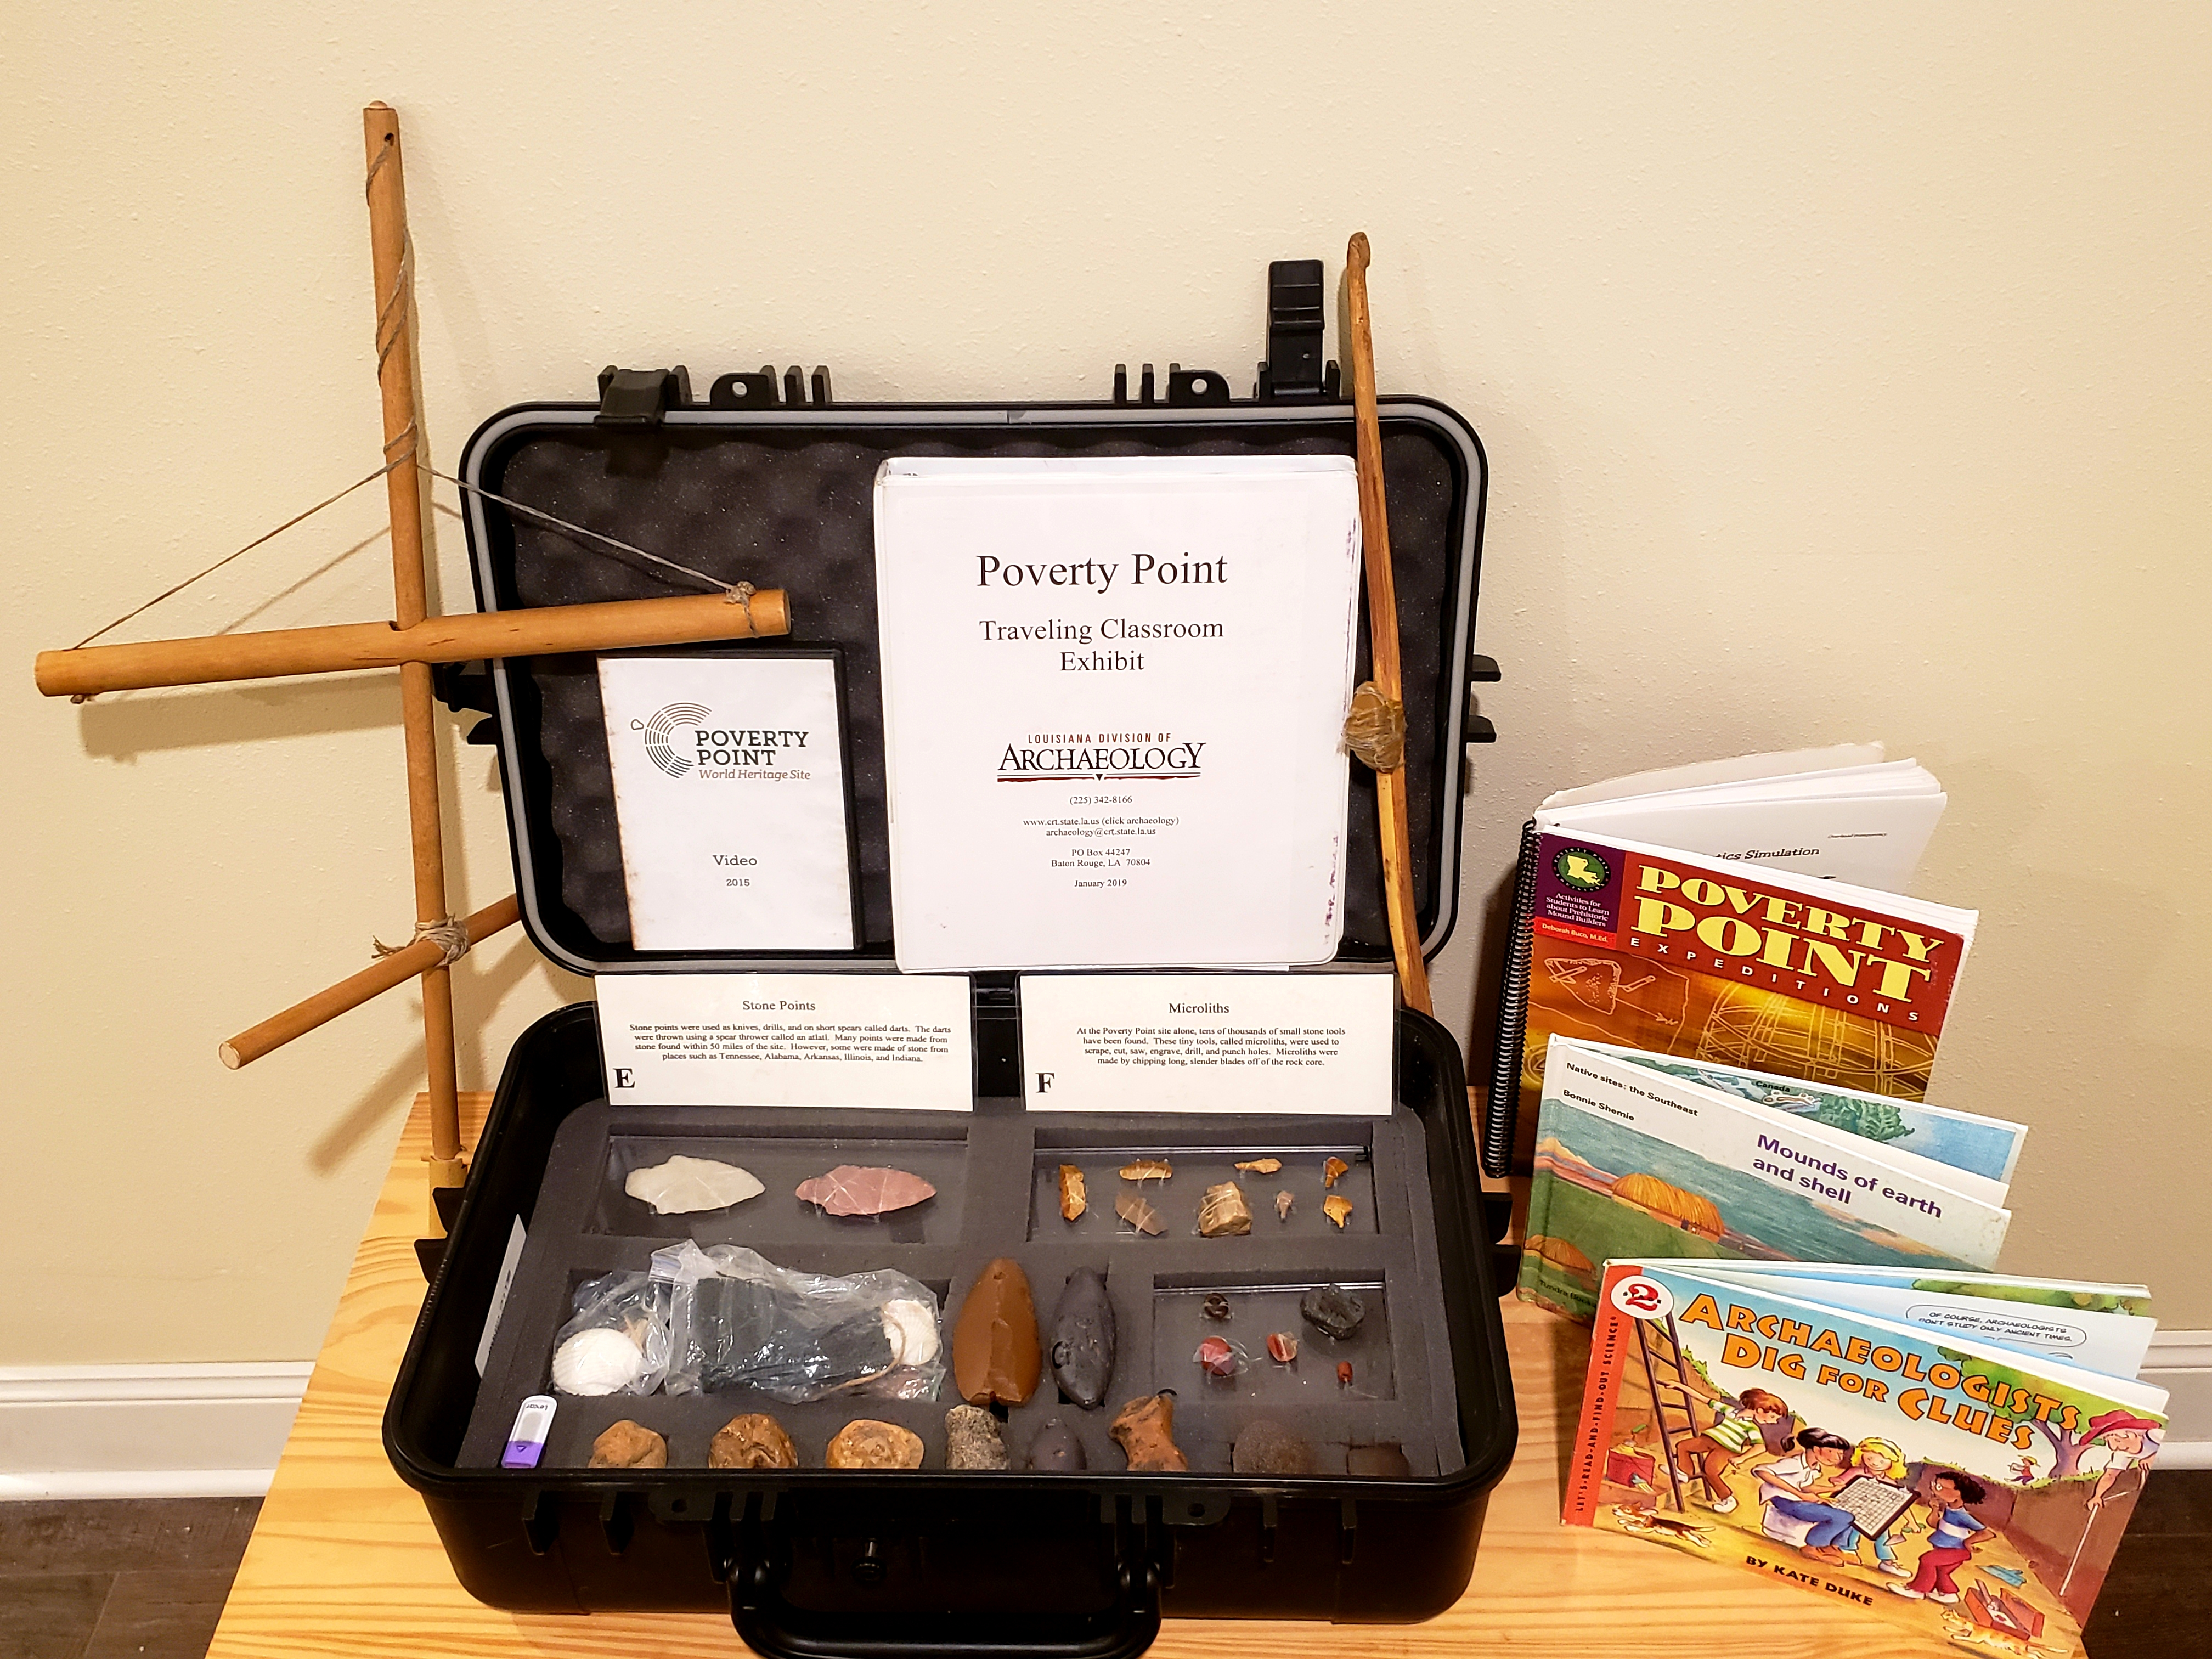 Poverty Point Traveling Classroom Exhibit Kit. Photo courtesy of the Louisiana Department of Culture, Recreation and Tourism, Office of Cultural Development, Division of Archaeology.